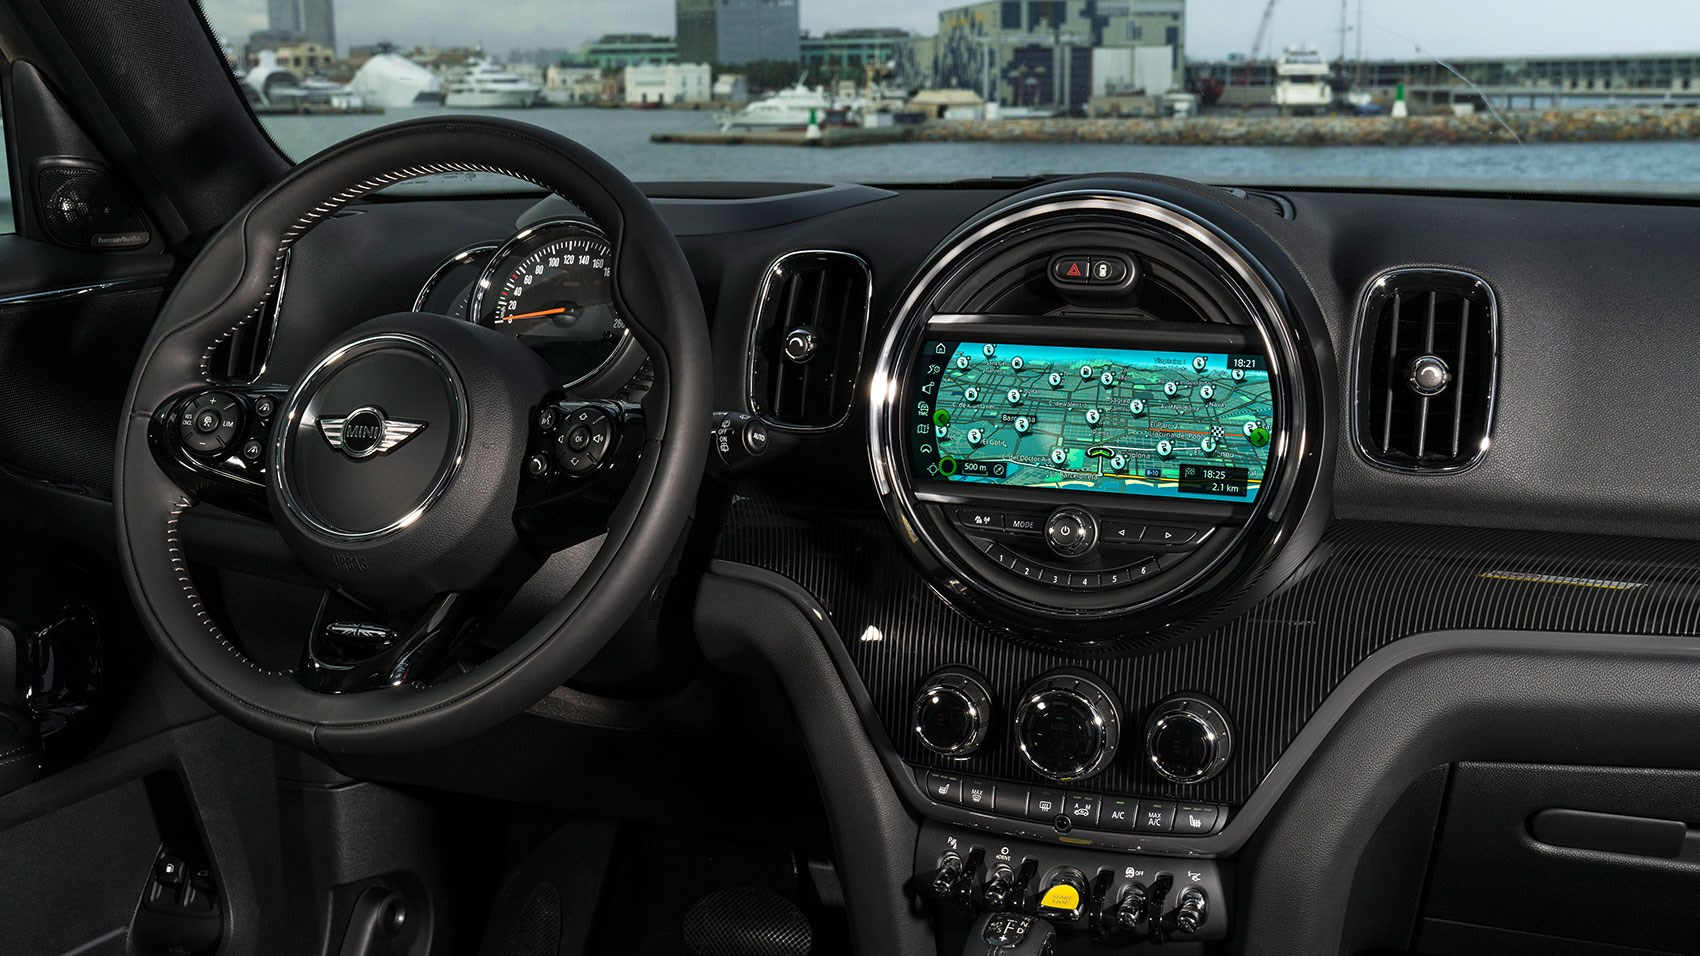 Mini Countryman hybrid 2020 dashboard